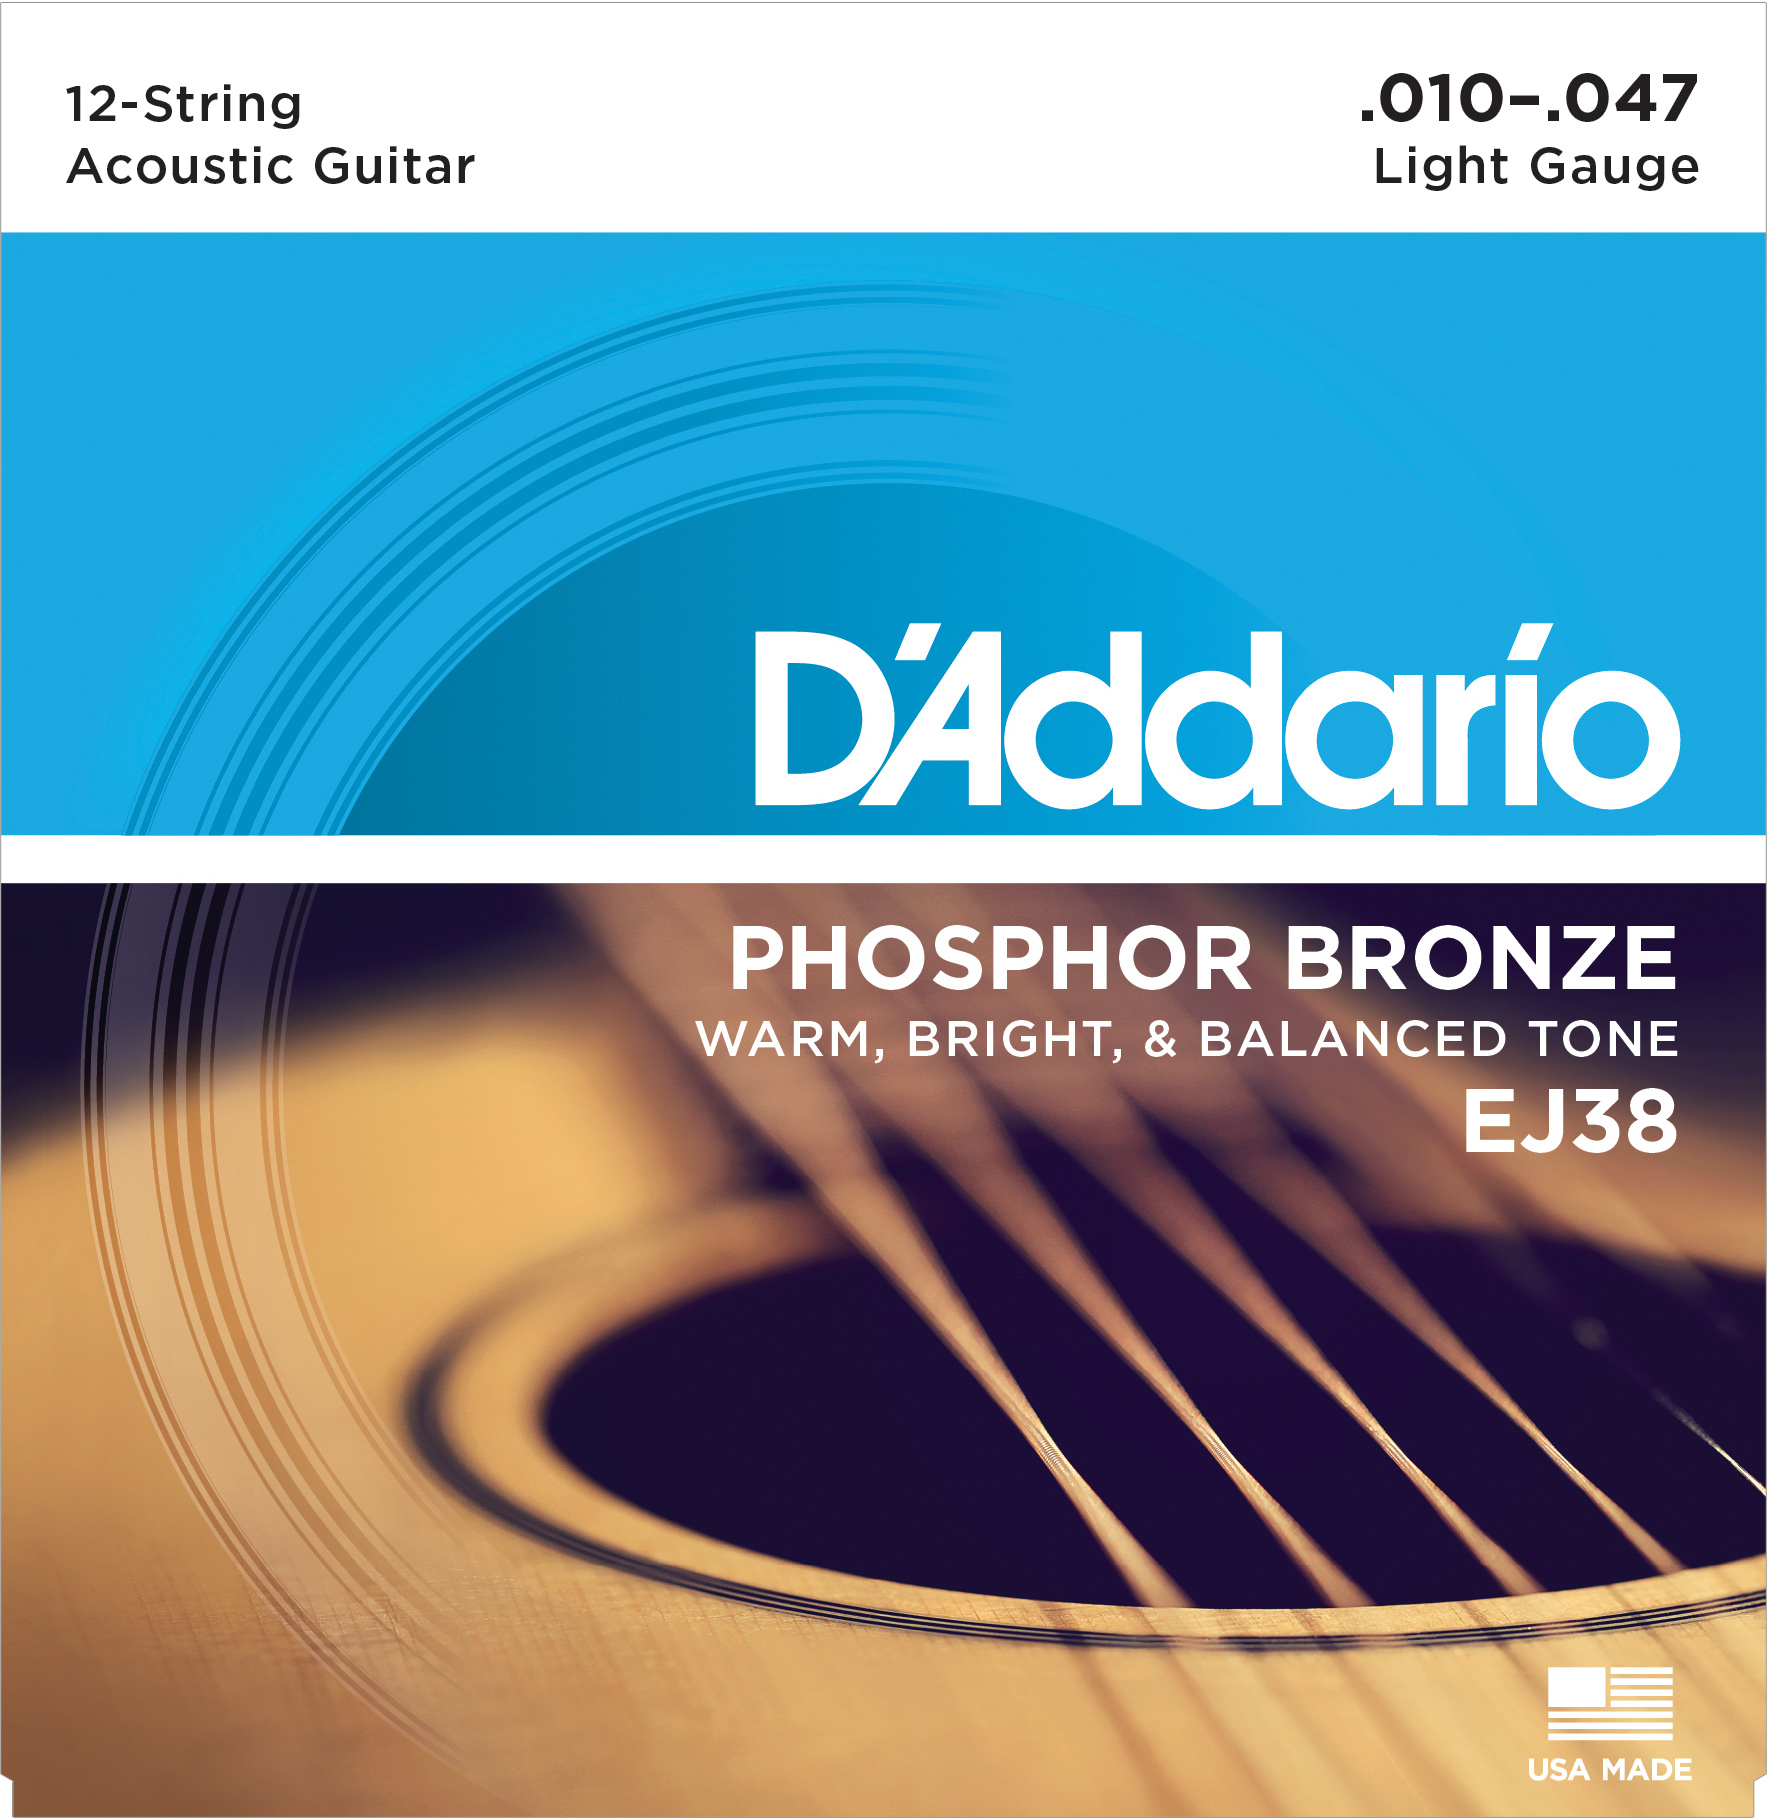 D'Addario Phosphor Bronze EJ38 Acoustic Guitar Strings, 12-String, Light, 10-47